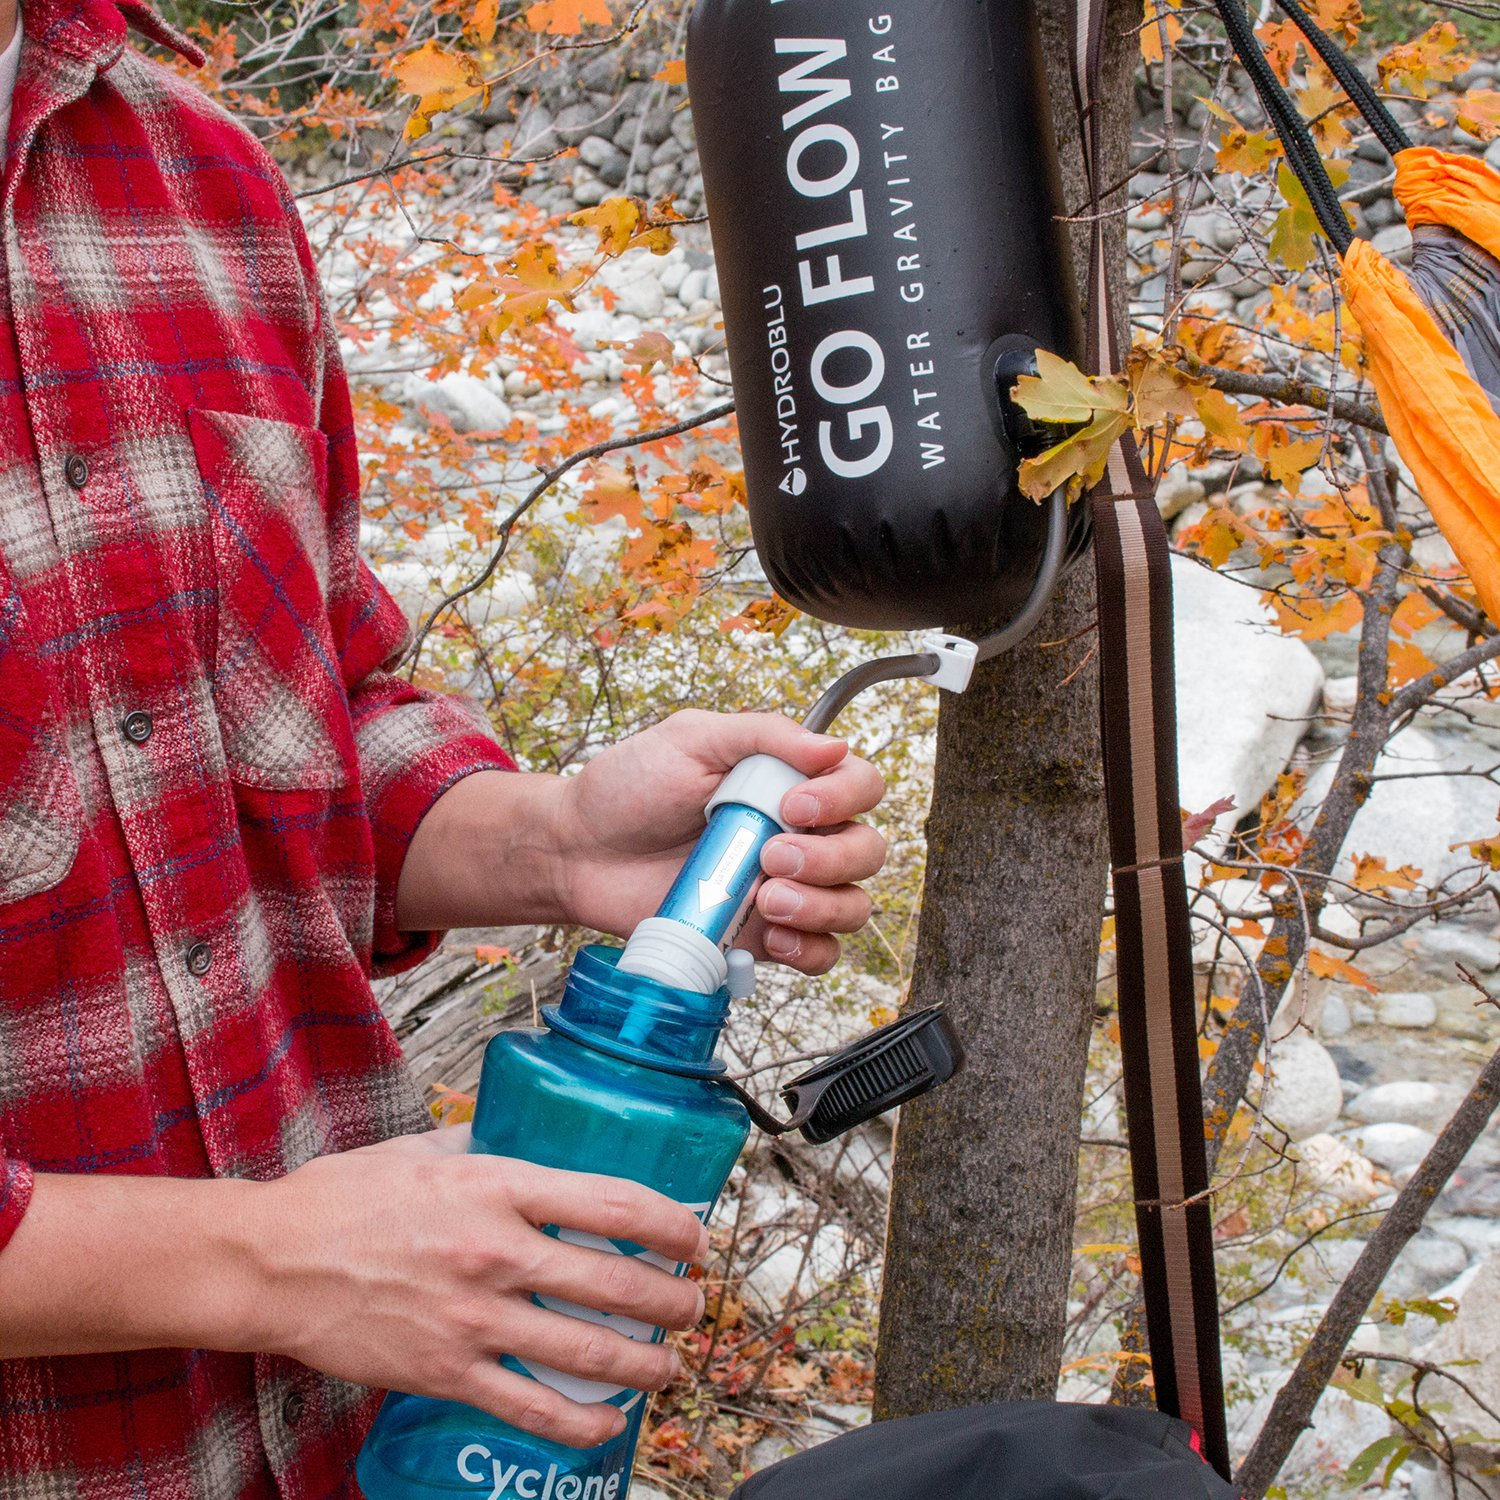 HydroBlu Go Flow Gravity Water Filter Bag with Versa Flow Water Filter Kit by HydroBlu (Image #5)